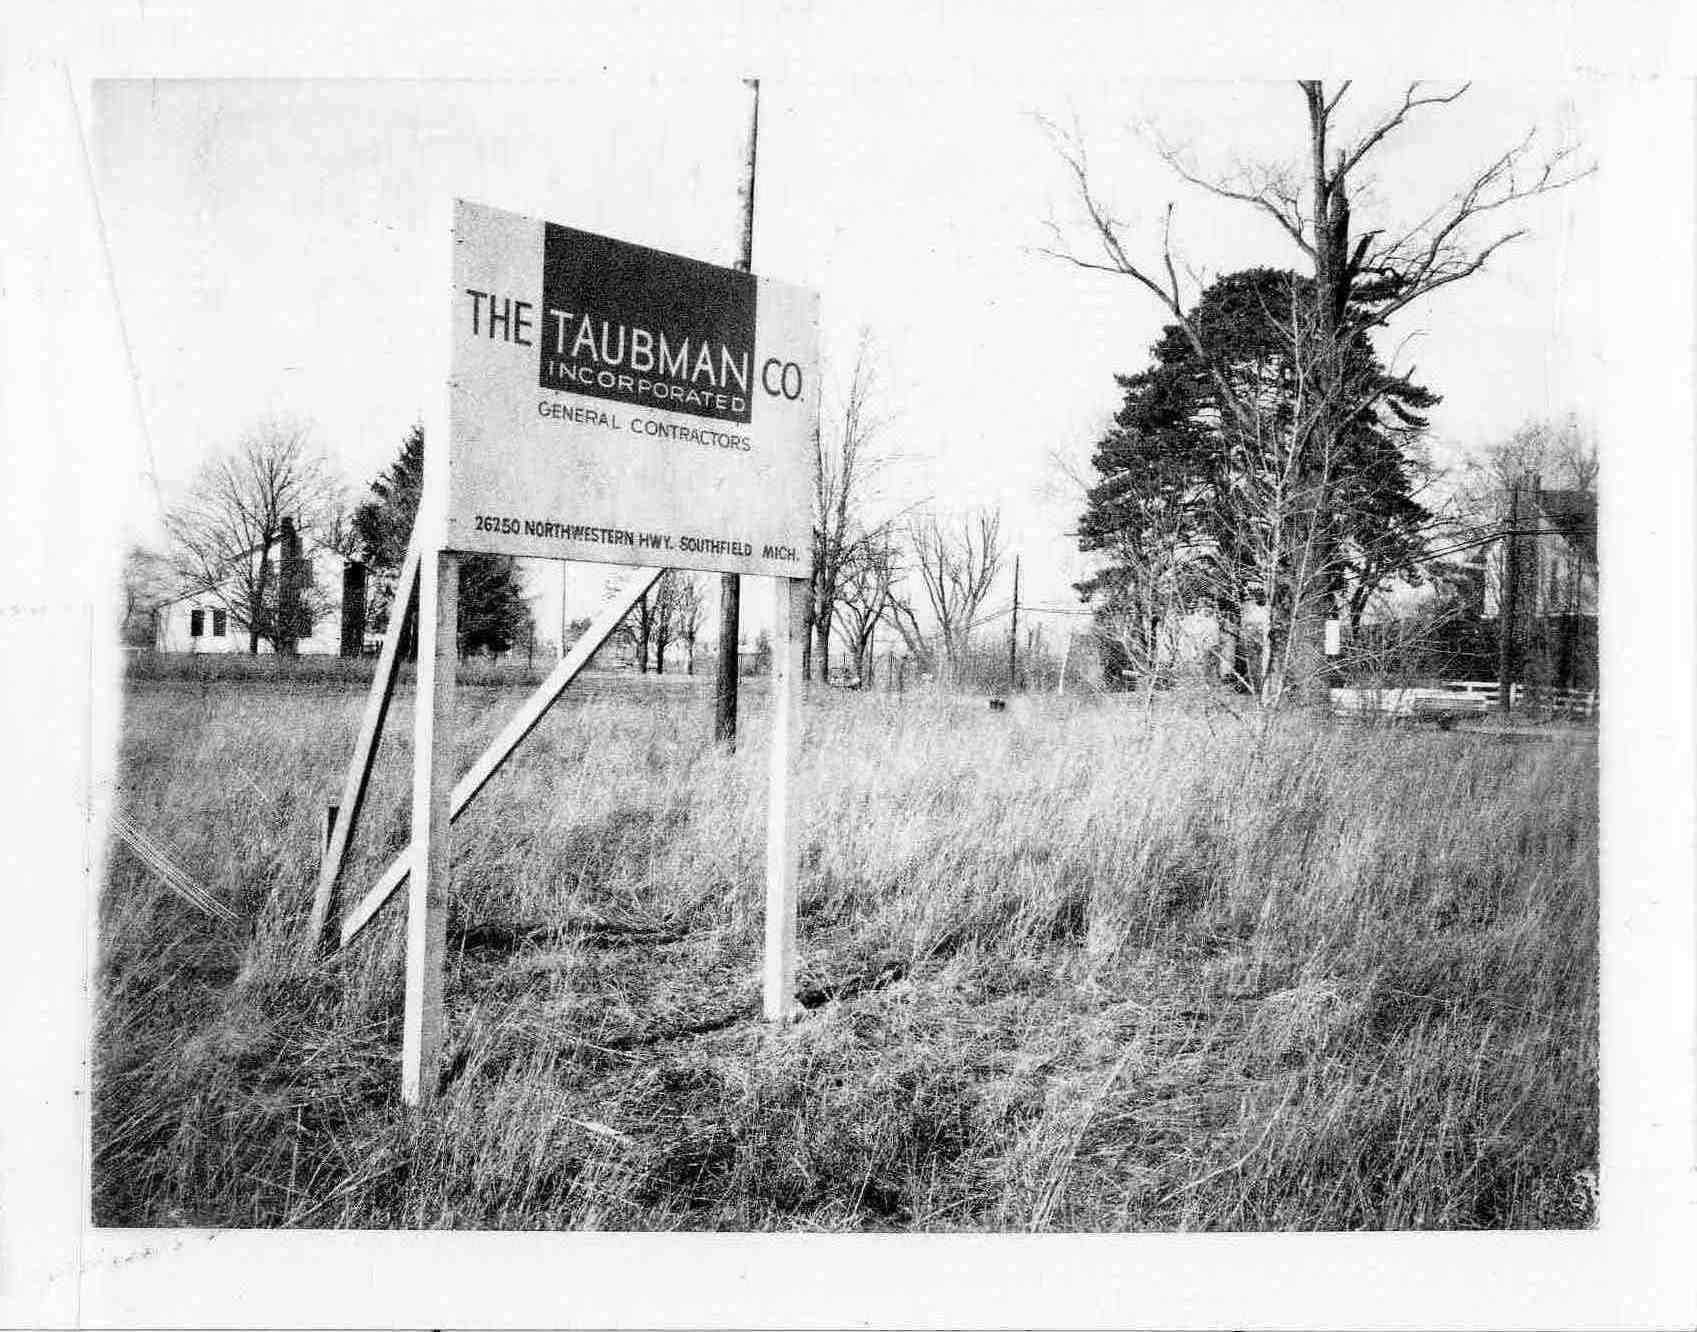 The Taubman Co. Inc, 1972 image